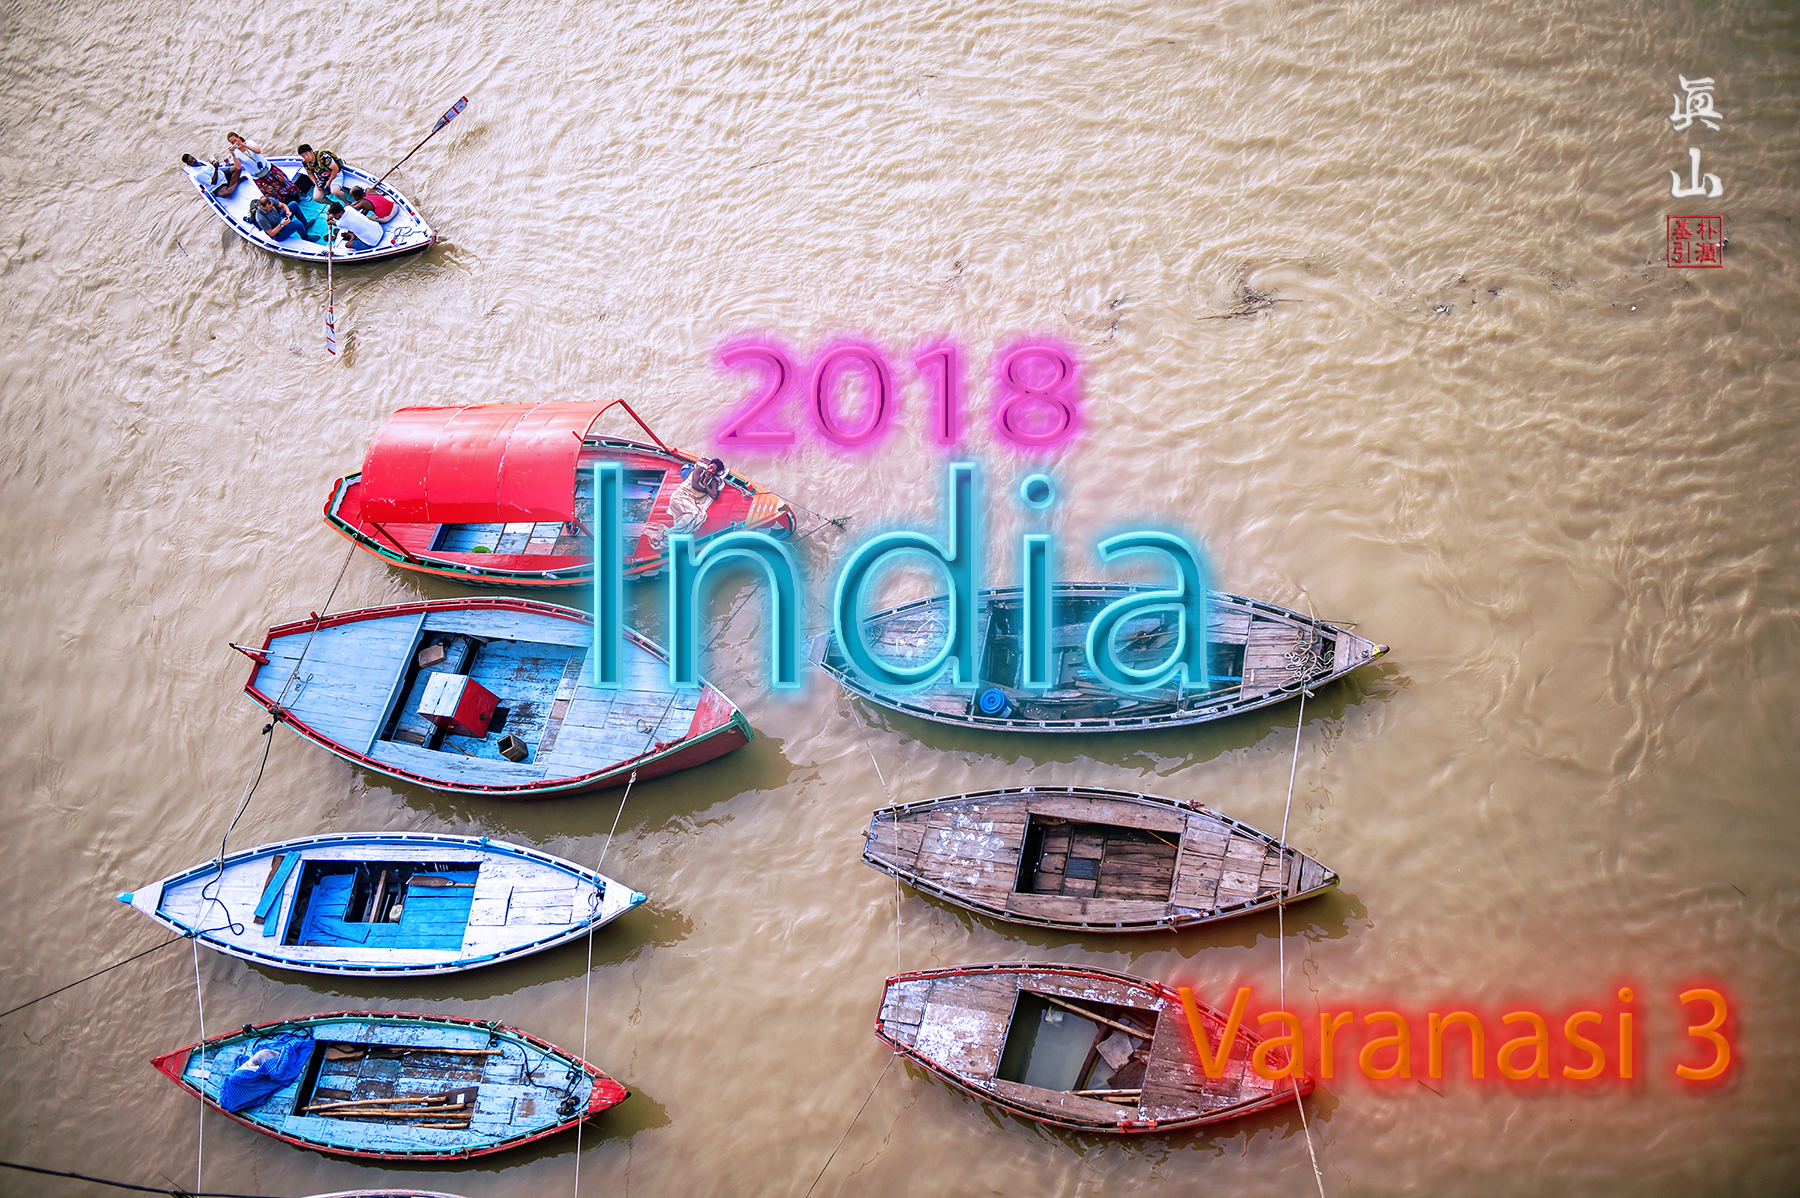 2018 India Tour - Varanasi 3, 4th day